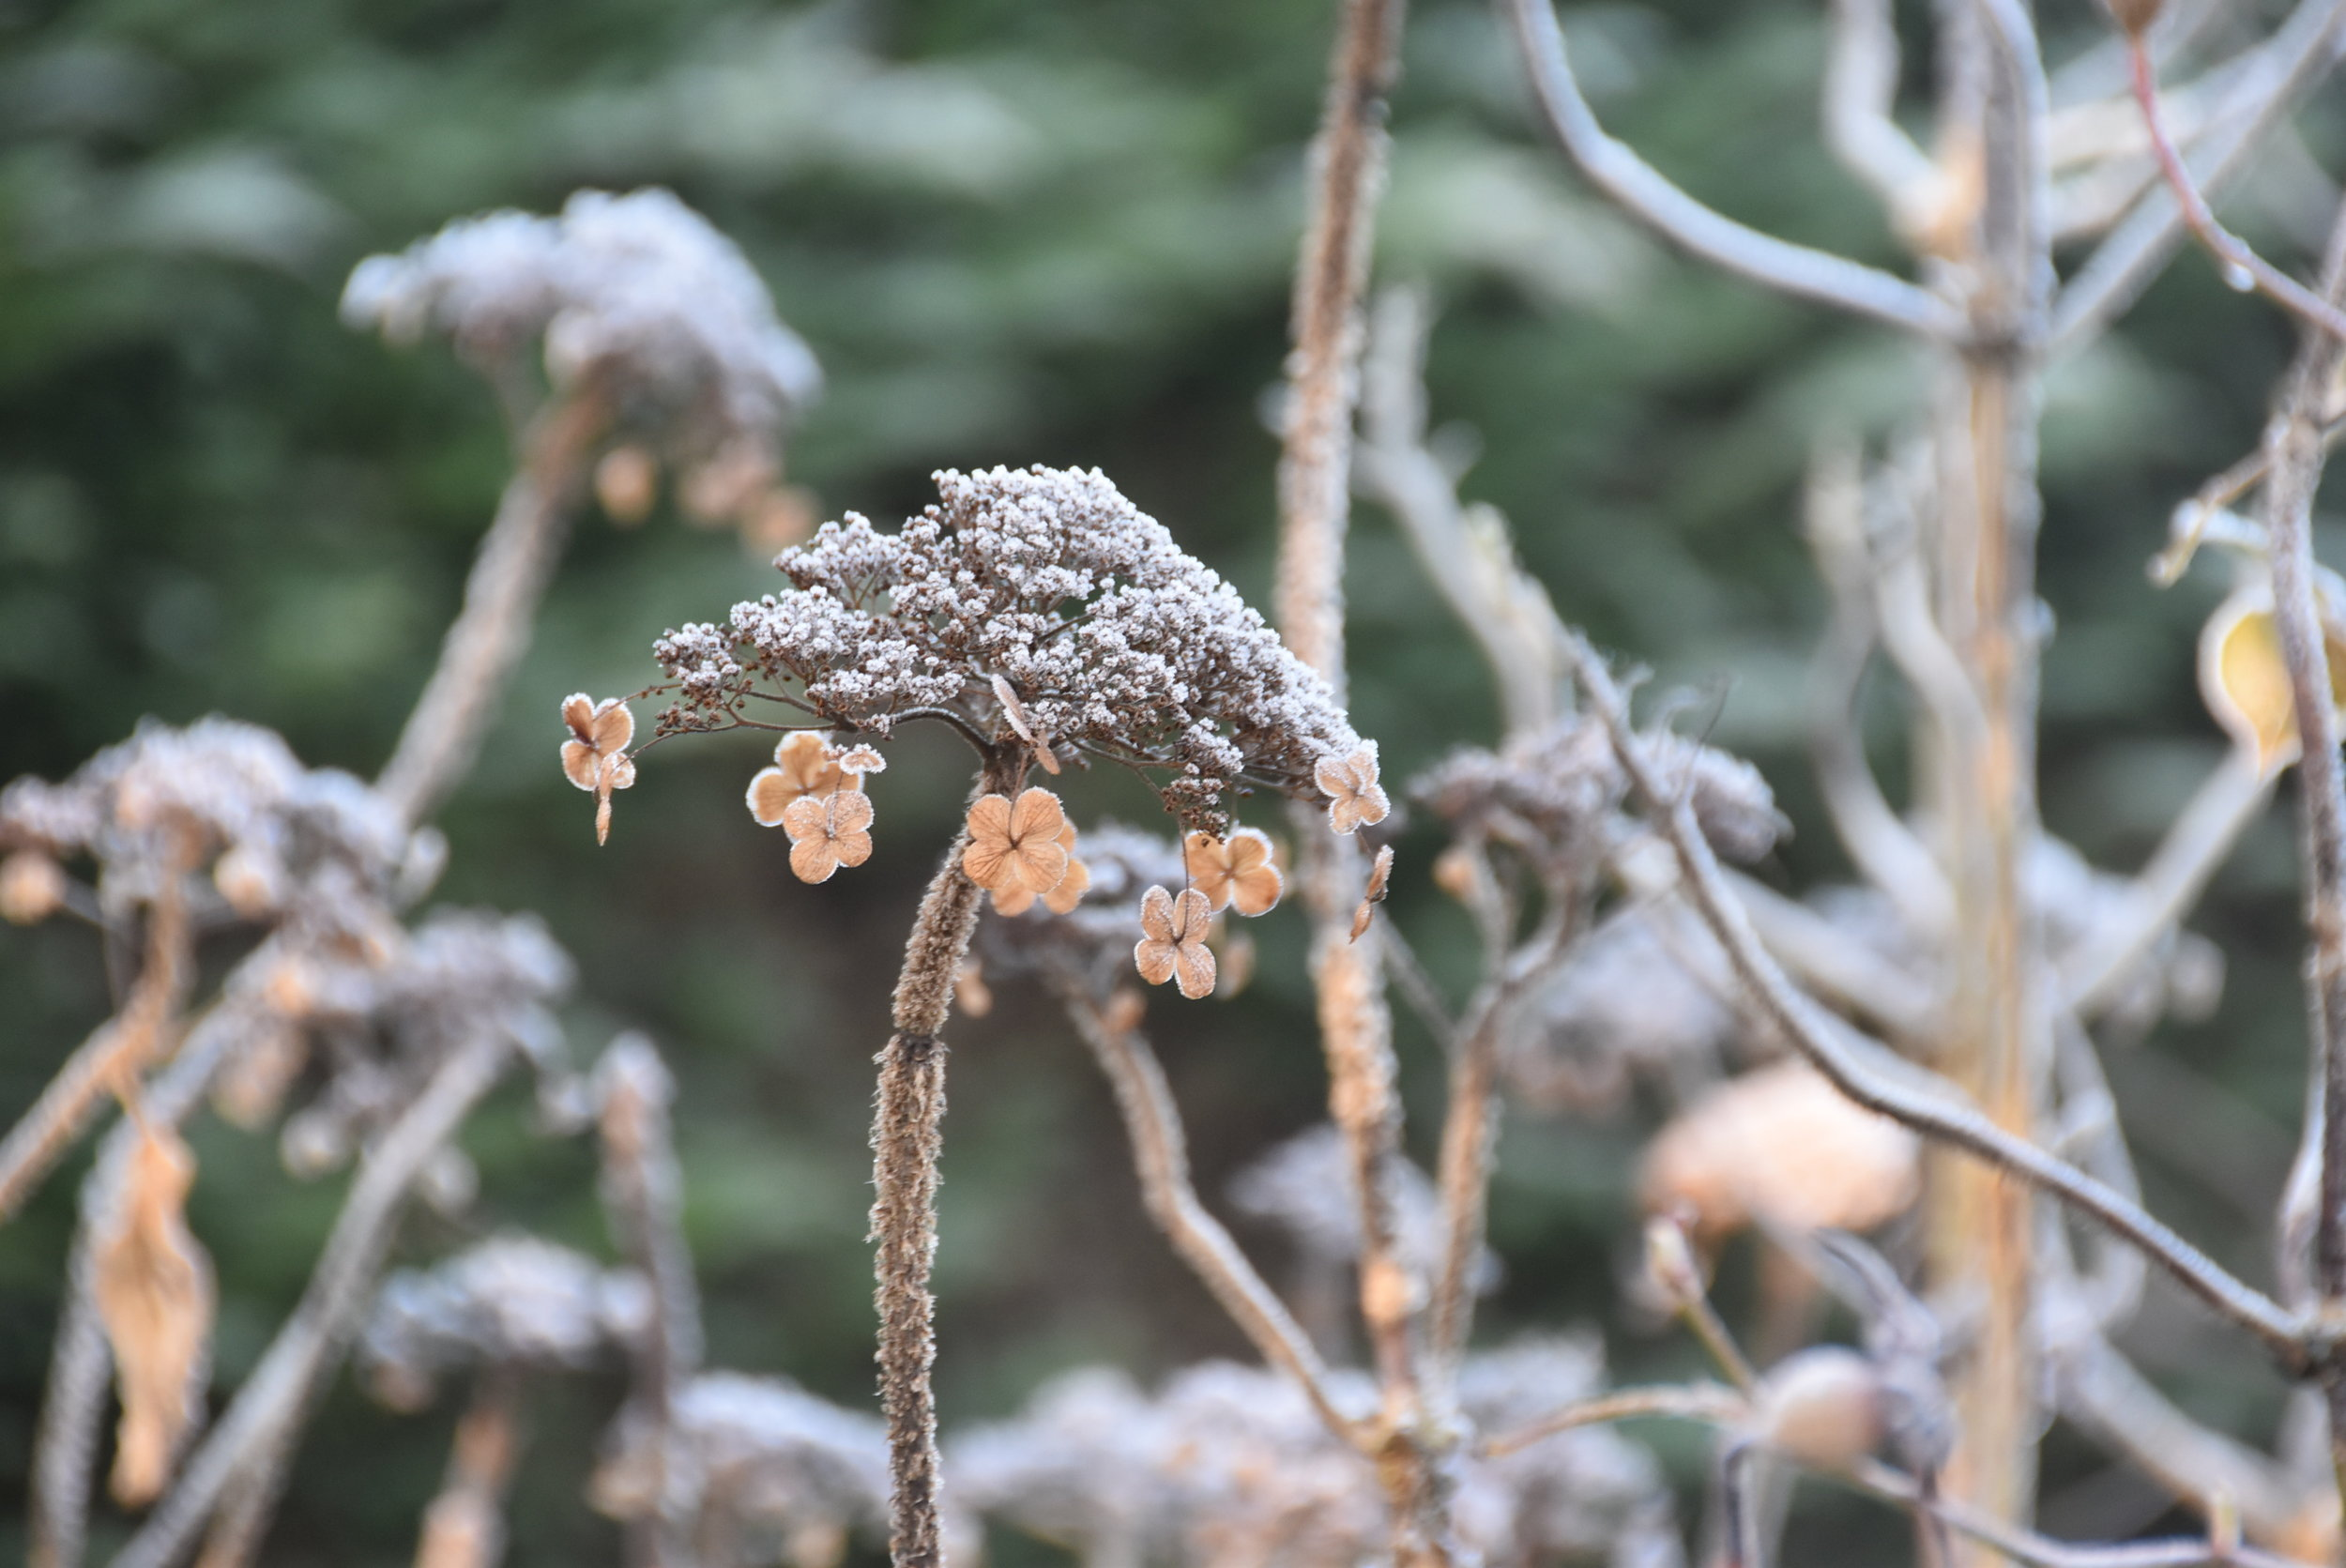 Seed head with frost